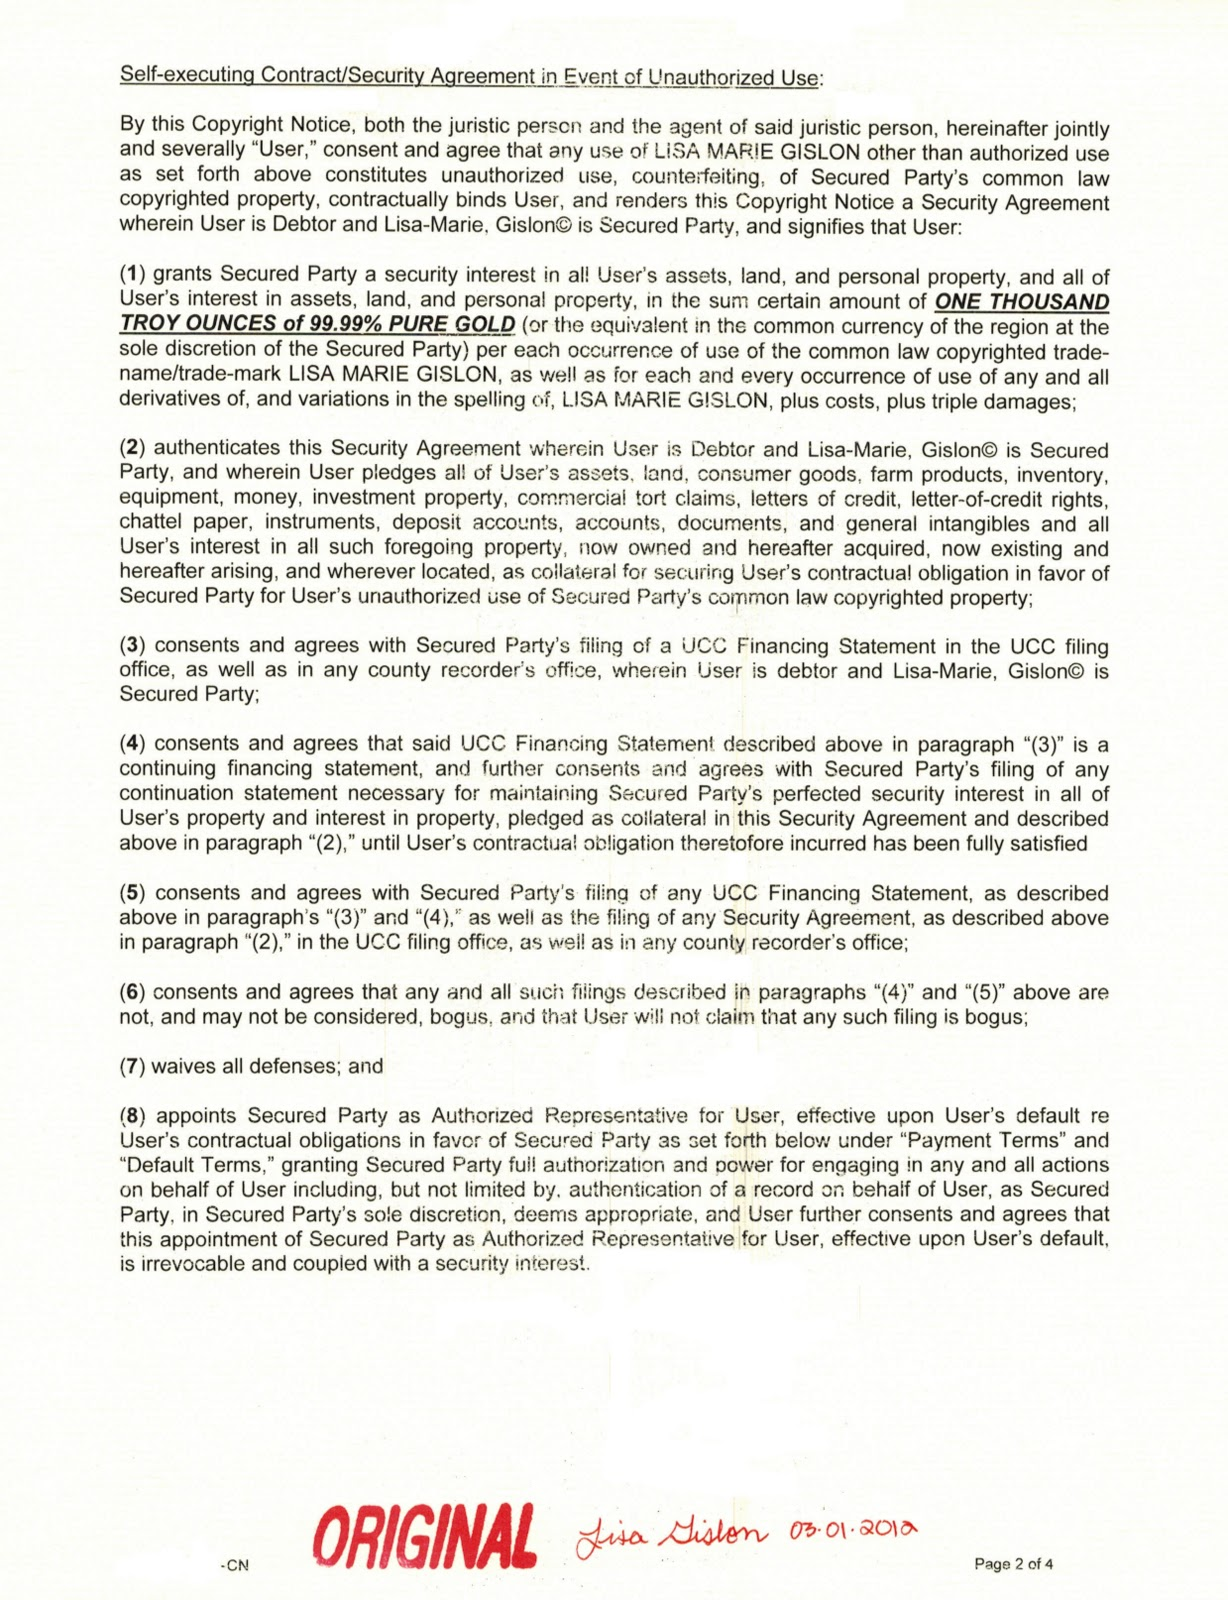 Security agreement ucc images agreement letter format ucc security agreement image collections agreement letter format atlas 2010 freed lisa marie gislons copyright part platinumwayz